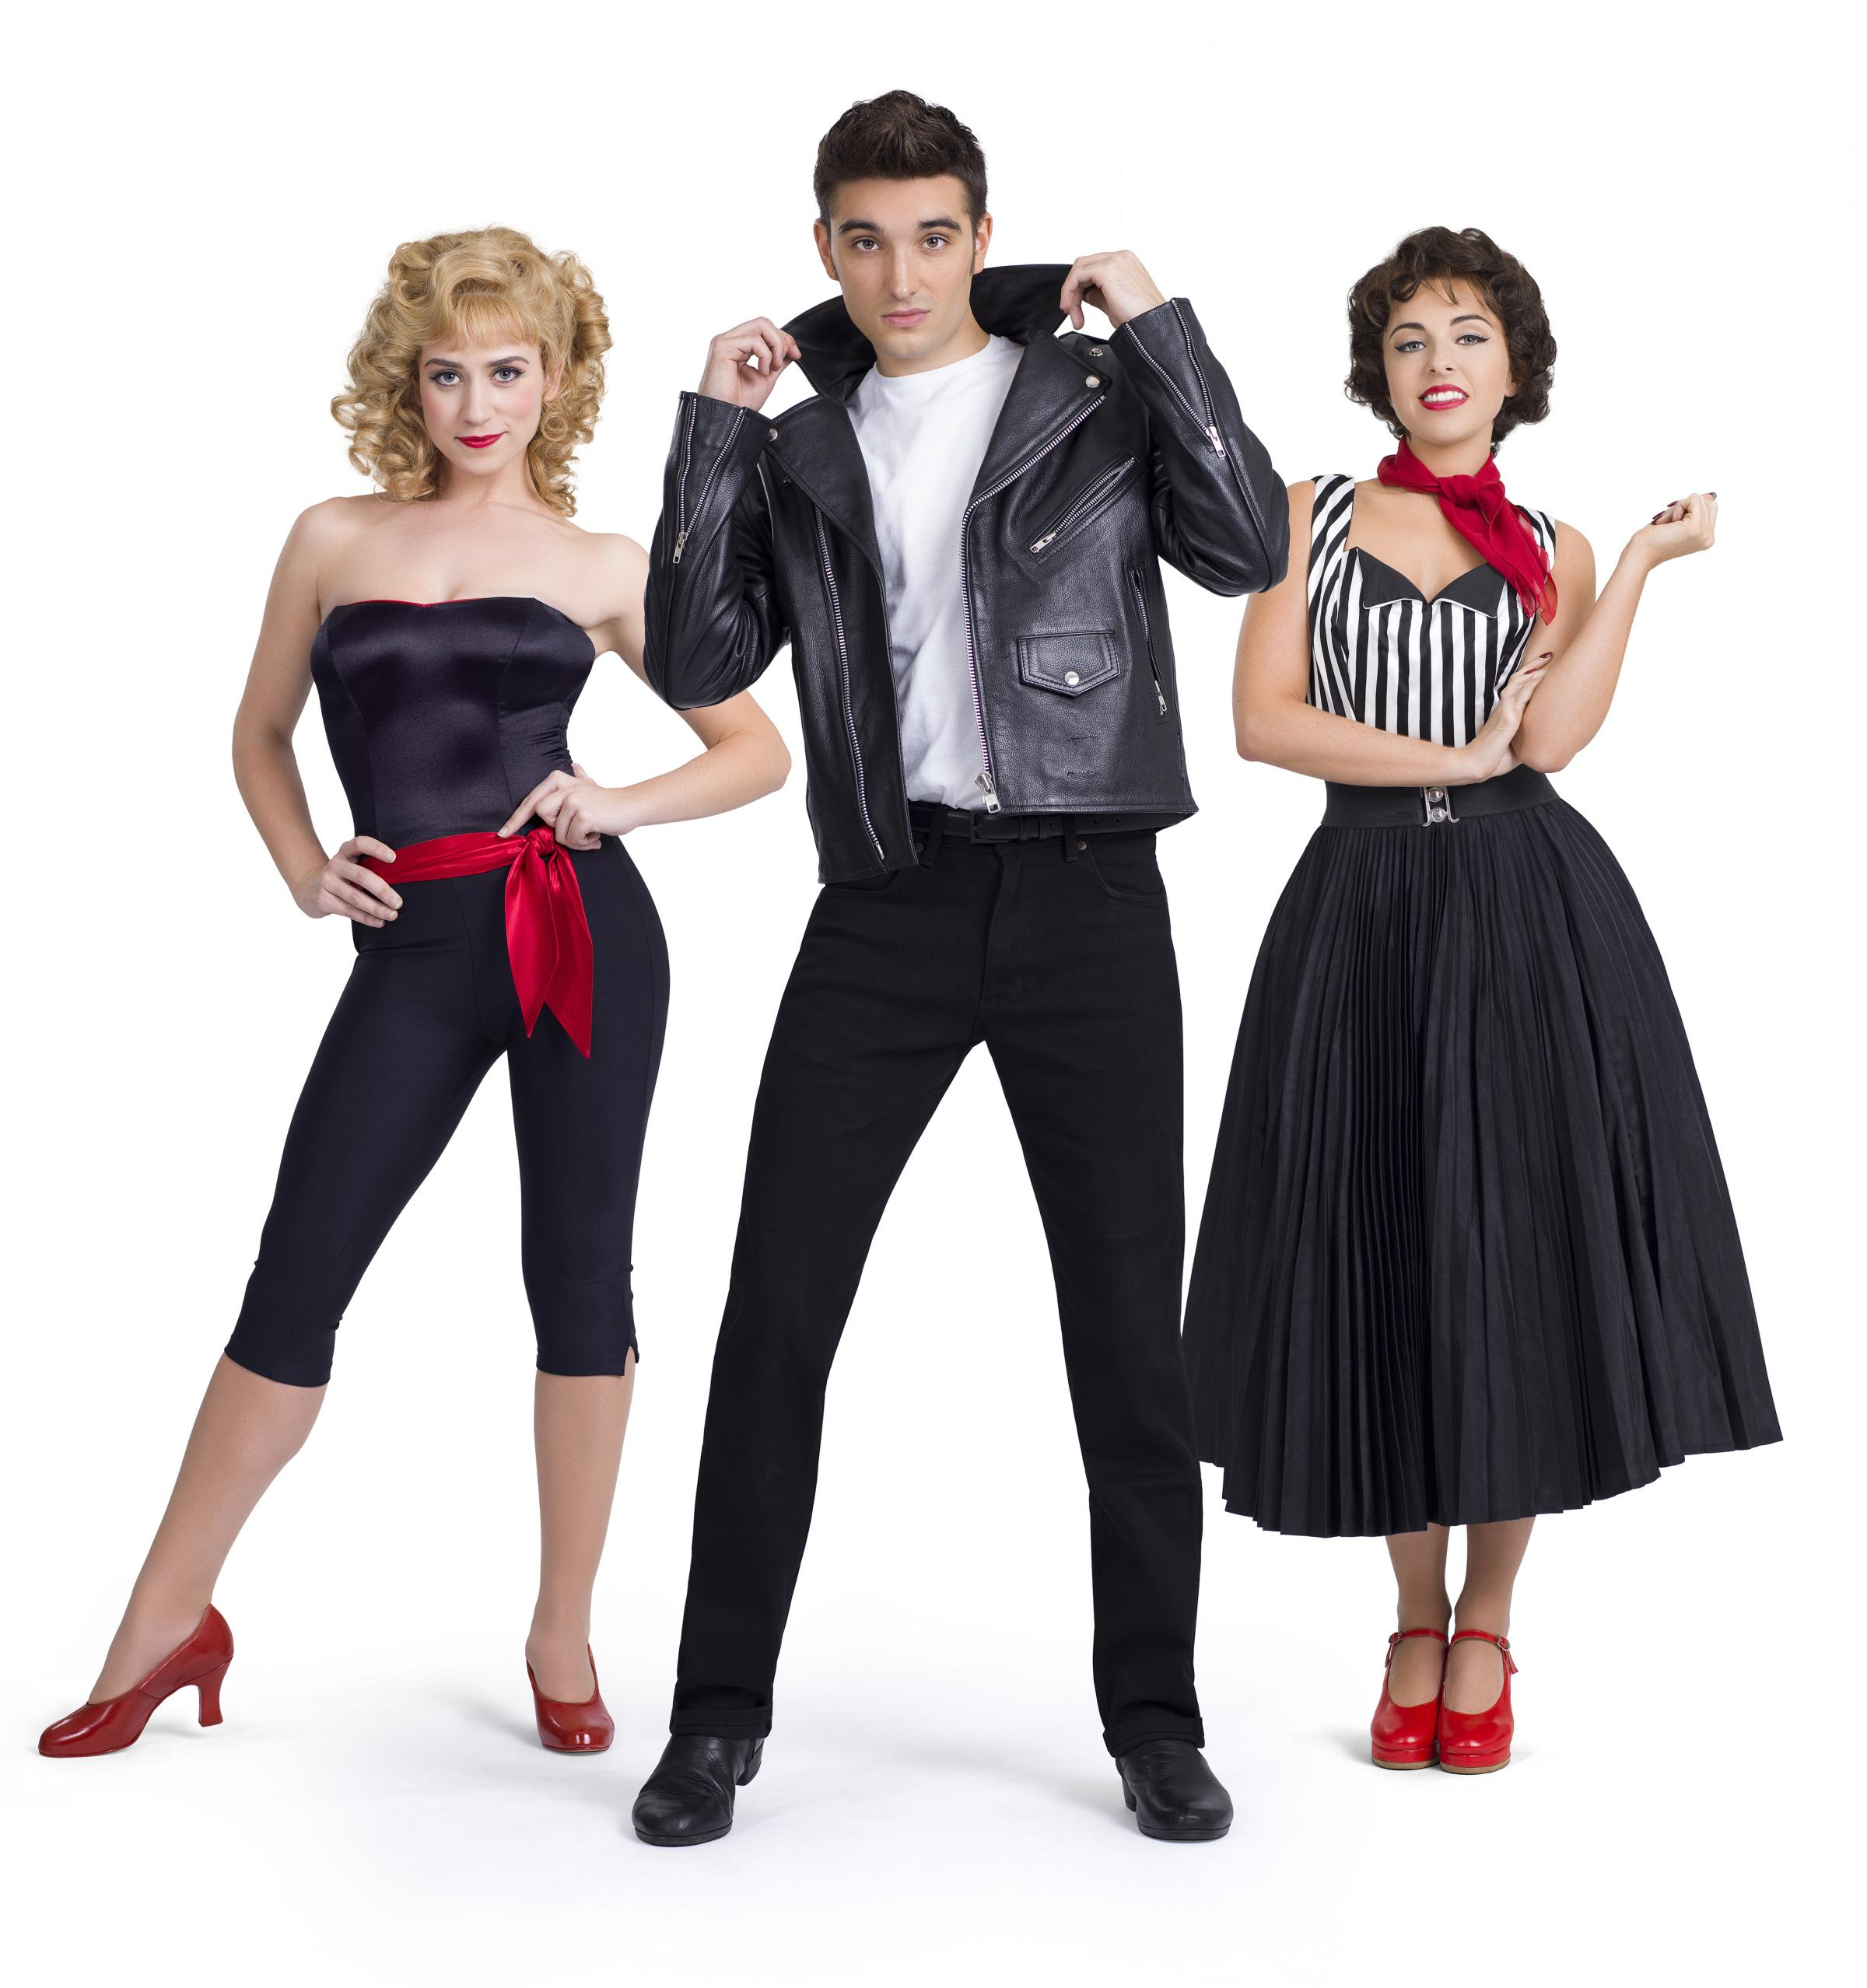 Danielle Hope (Sandy), Tom Parker (Danny) and Louisa Lytton (Rizzo) are set to star when Grease comes to Wolverhampton Grand Theatre. Photo: Paul Coltas